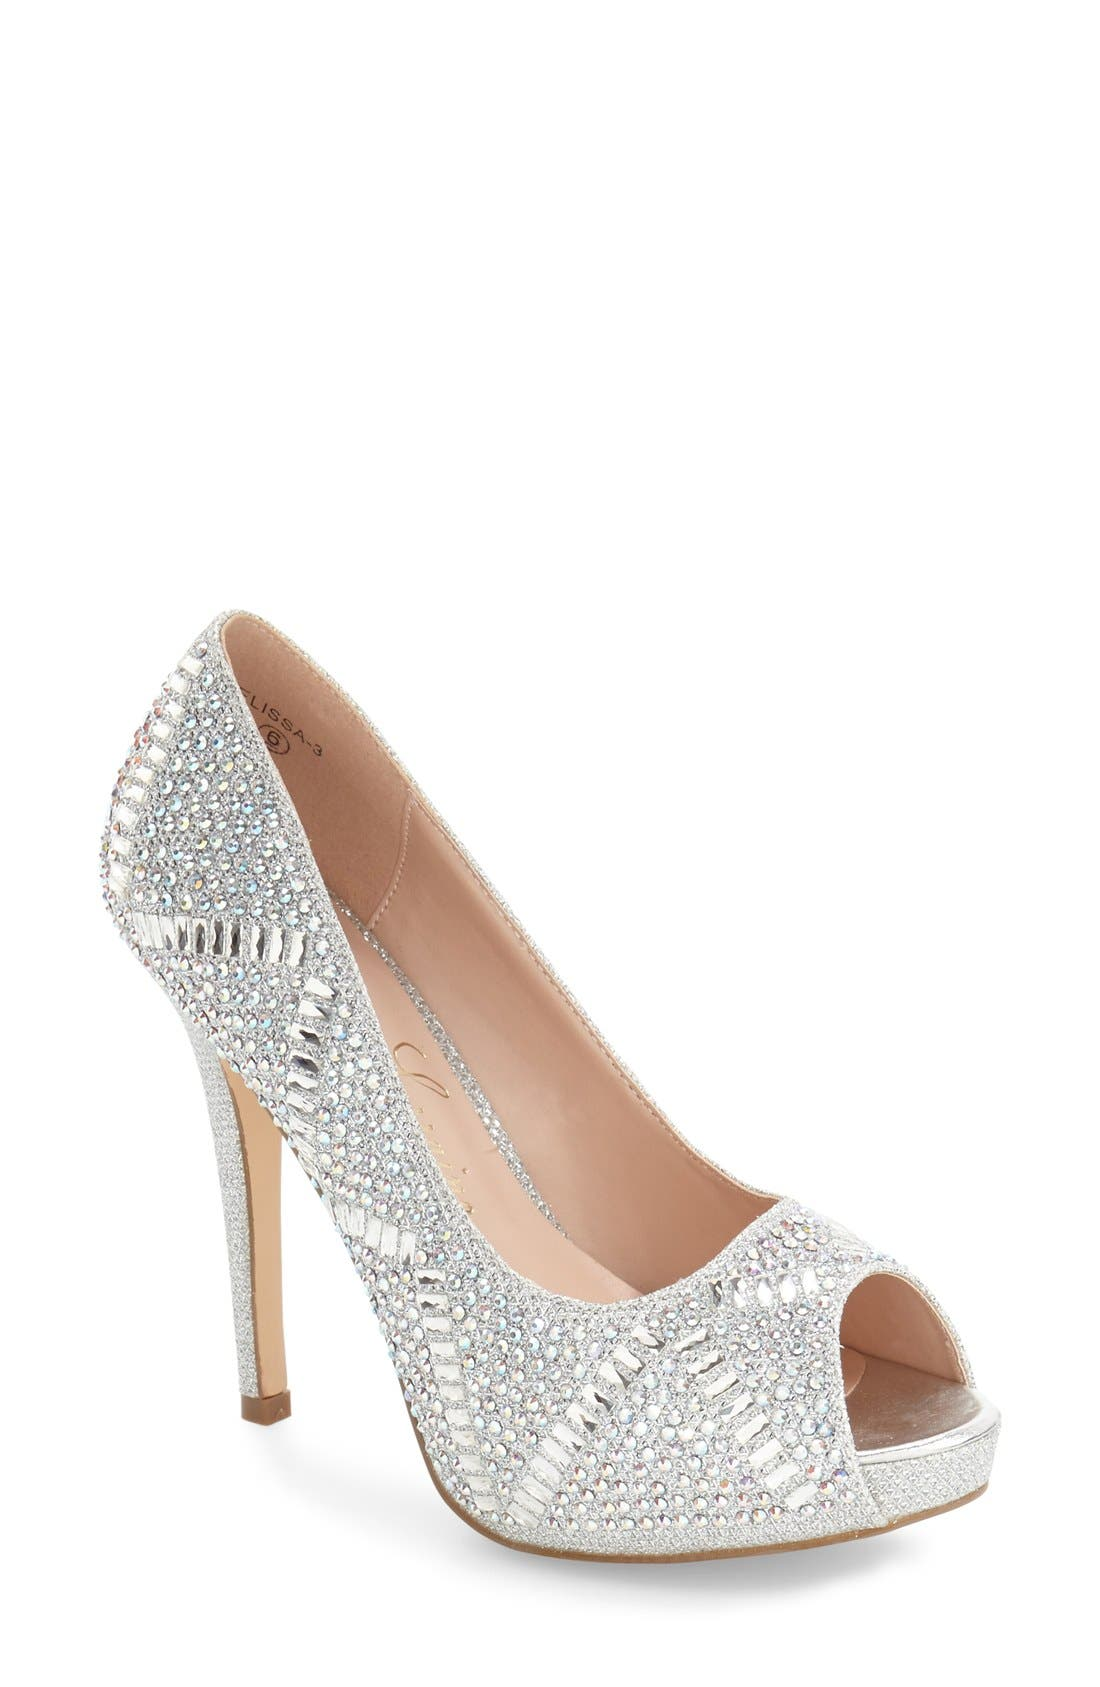 Elissa - 3 Peep Toe Pump,                             Main thumbnail 2, color,